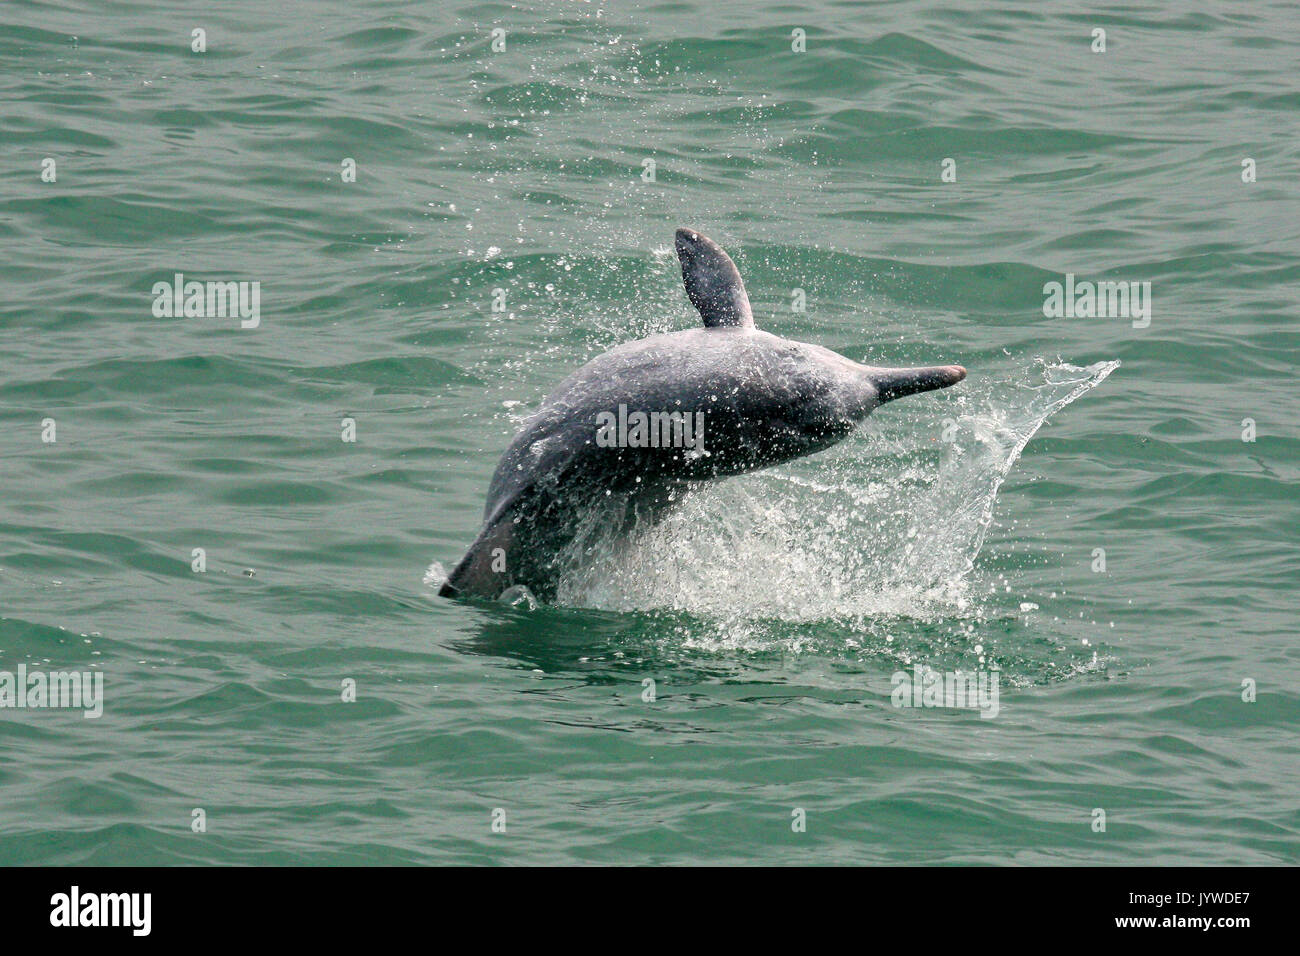 A young Indo-Pacific Humpback Dolphin (Sousa chinensis) breaching / jumping in Hong Kong waters. - Stock Image